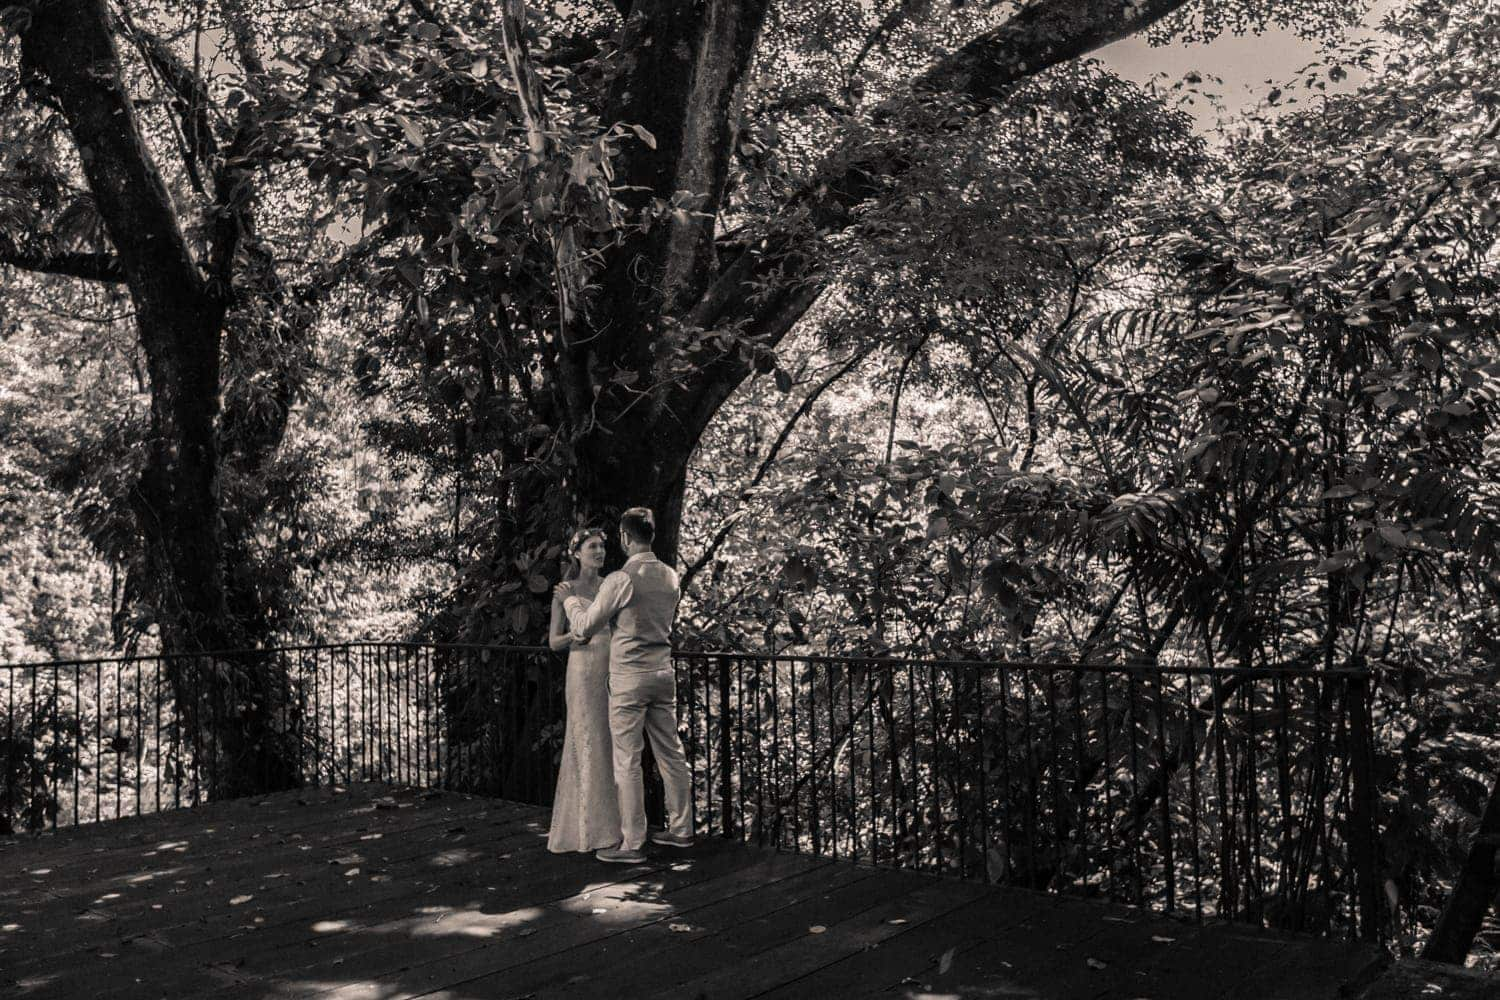 Wide angle photo of bride and groom standing on deck in rainforest.